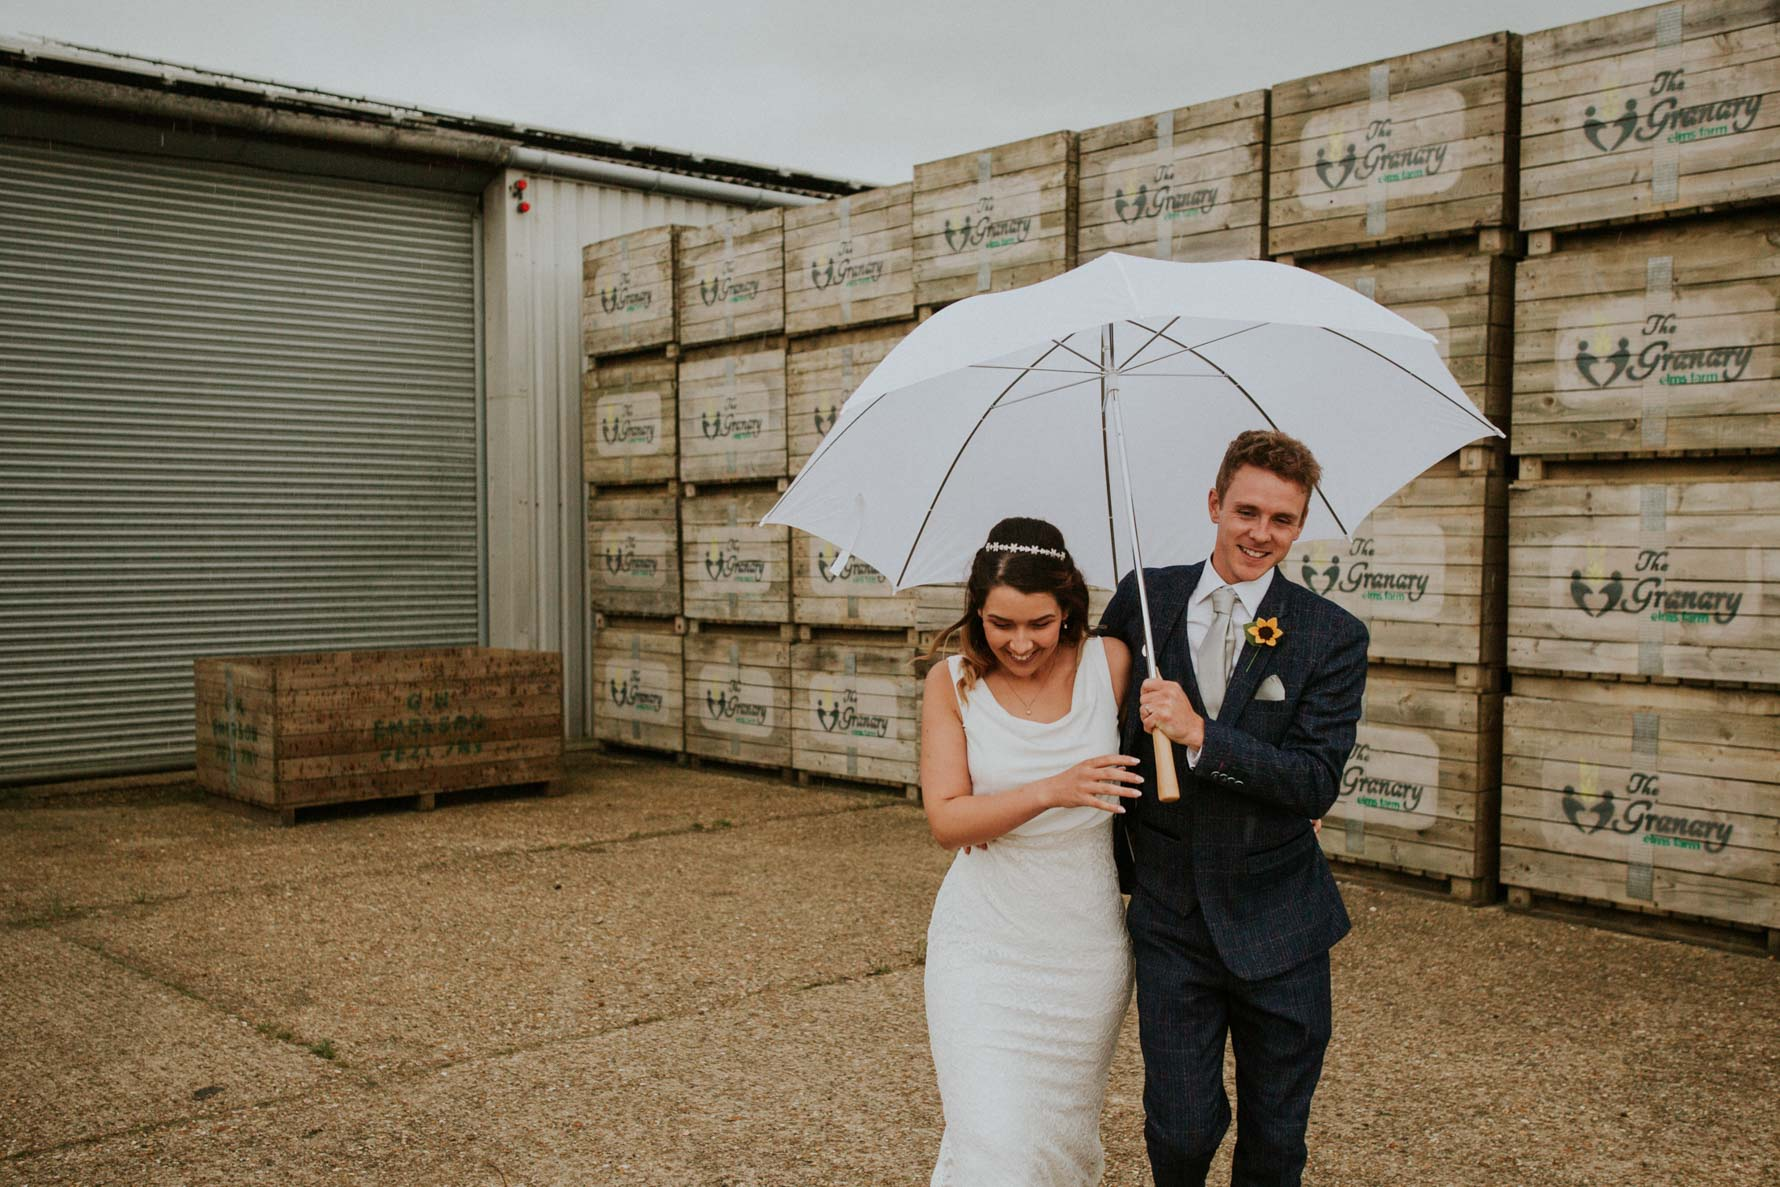 Bride and groom walking and laughing with an umbrella